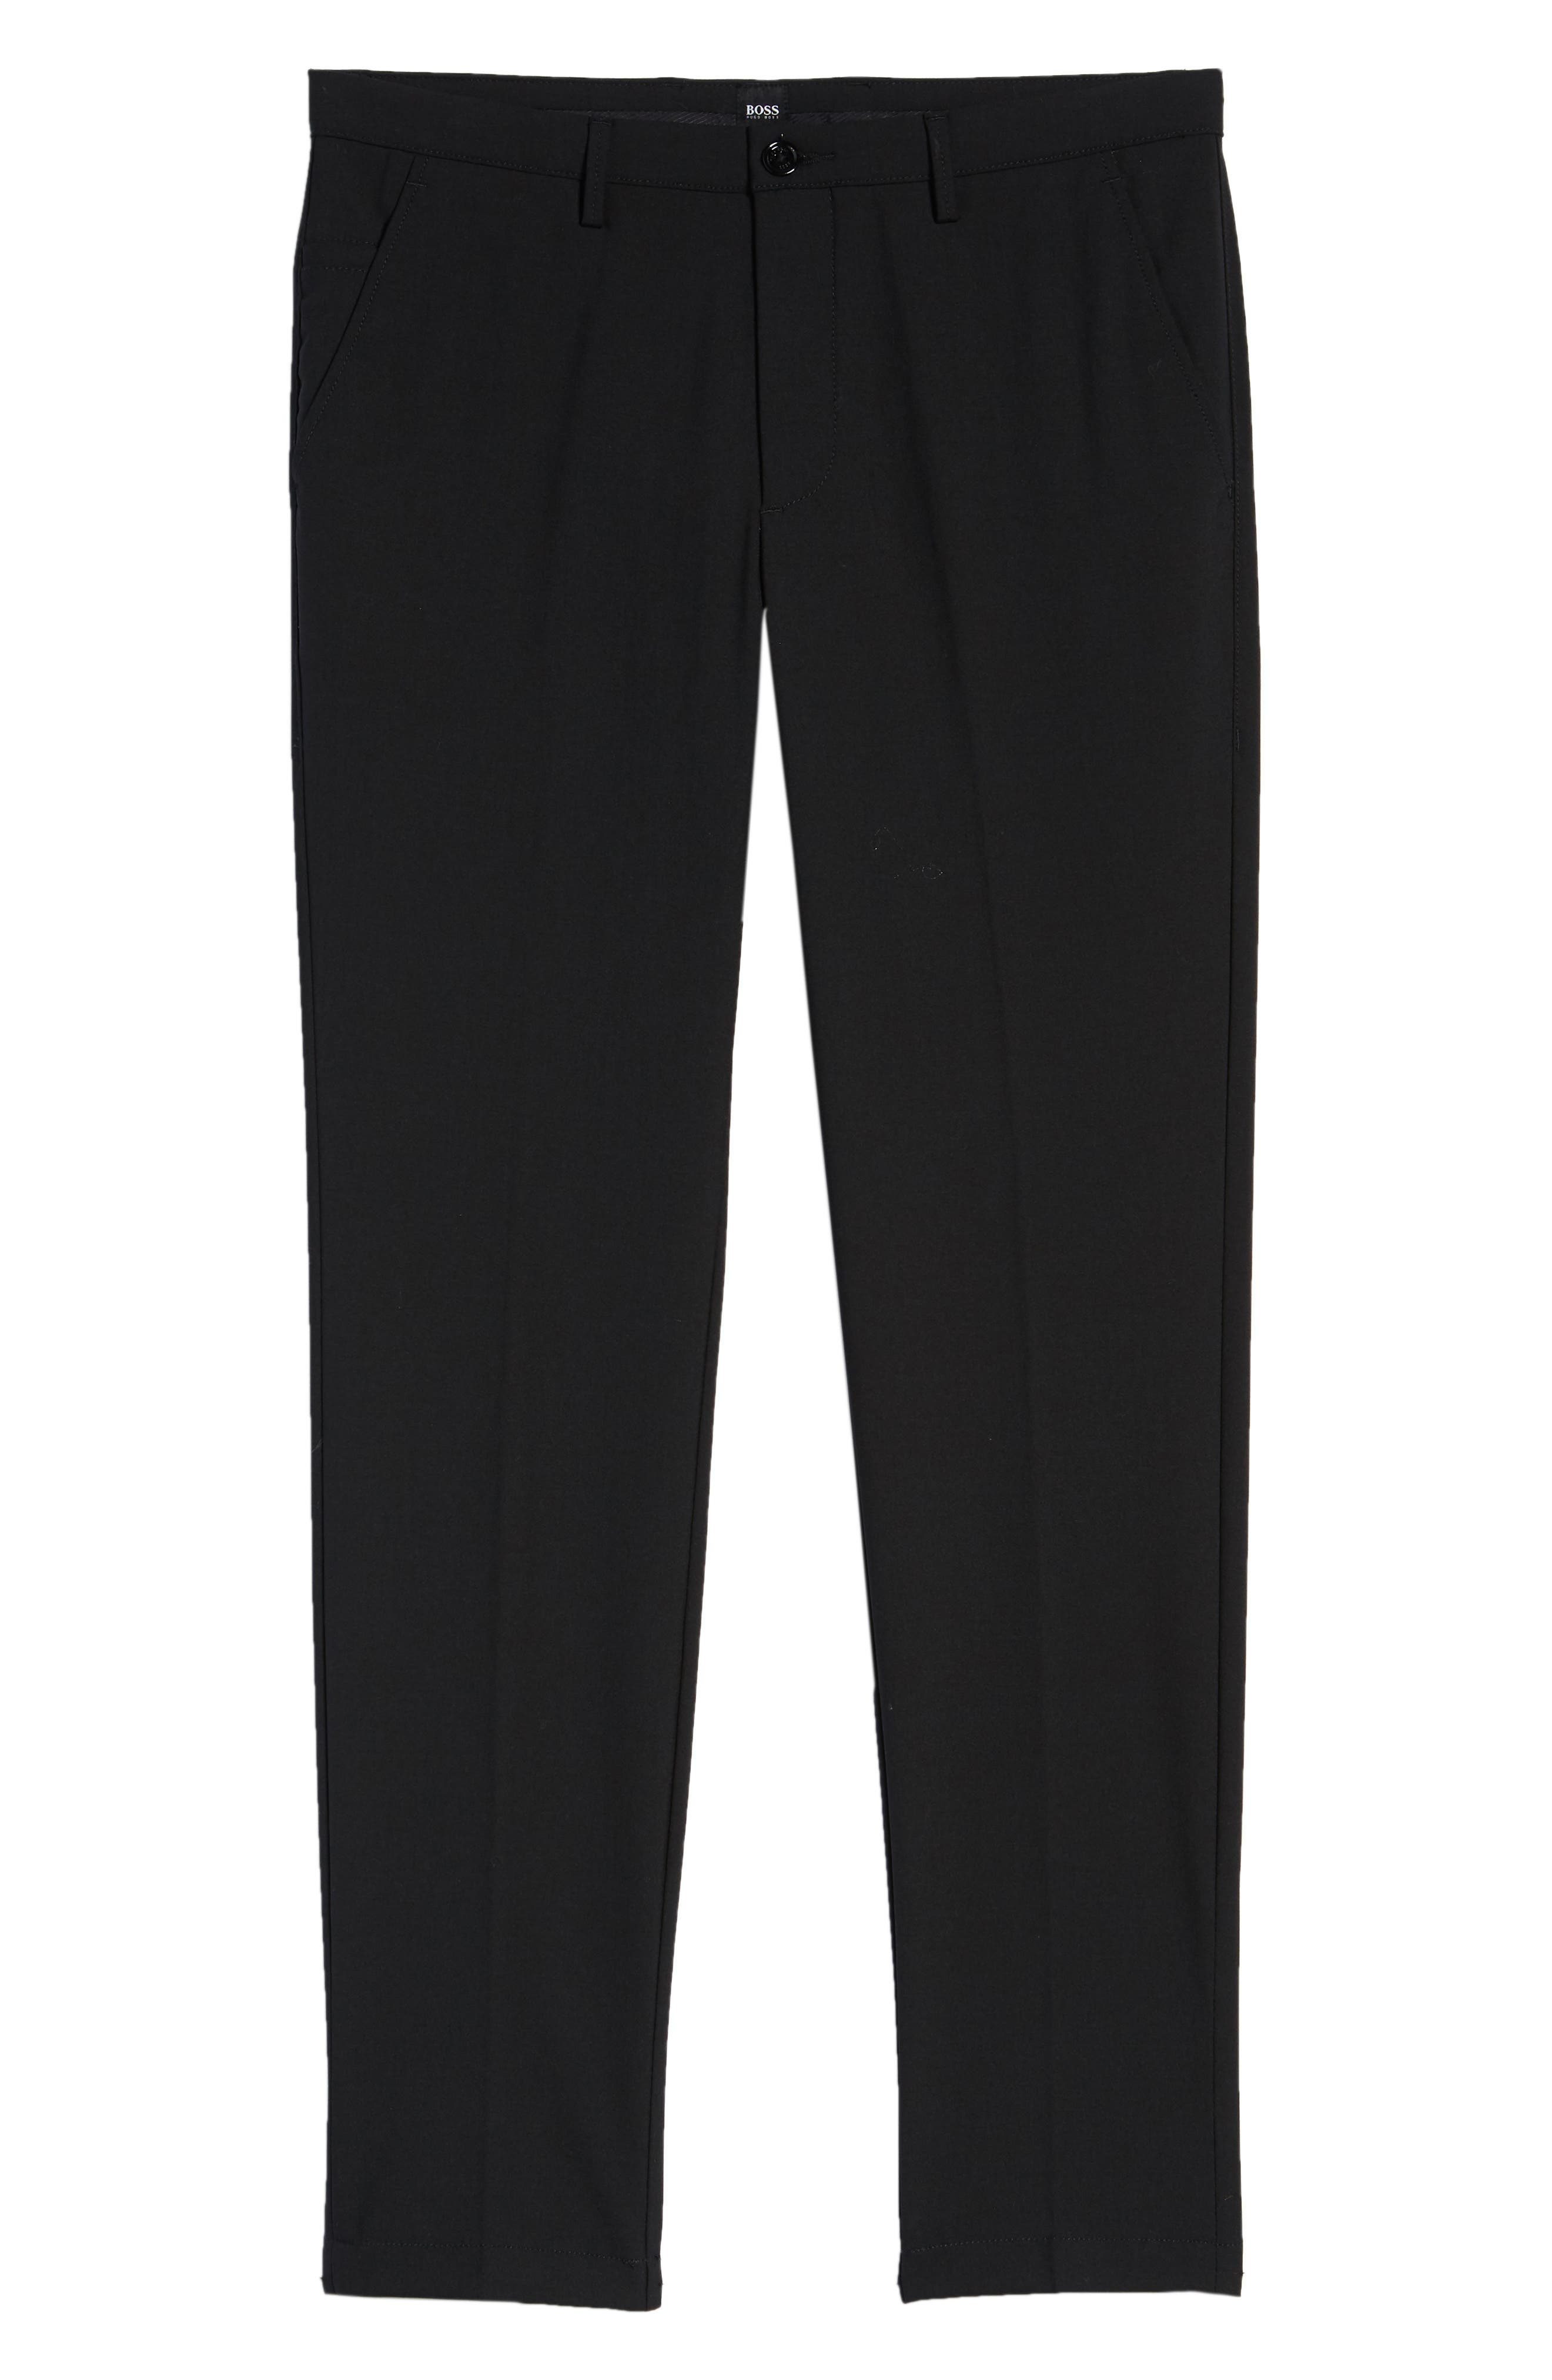 Kaito Slim Fit Trousers,                             Alternate thumbnail 6, color,                             BLACK